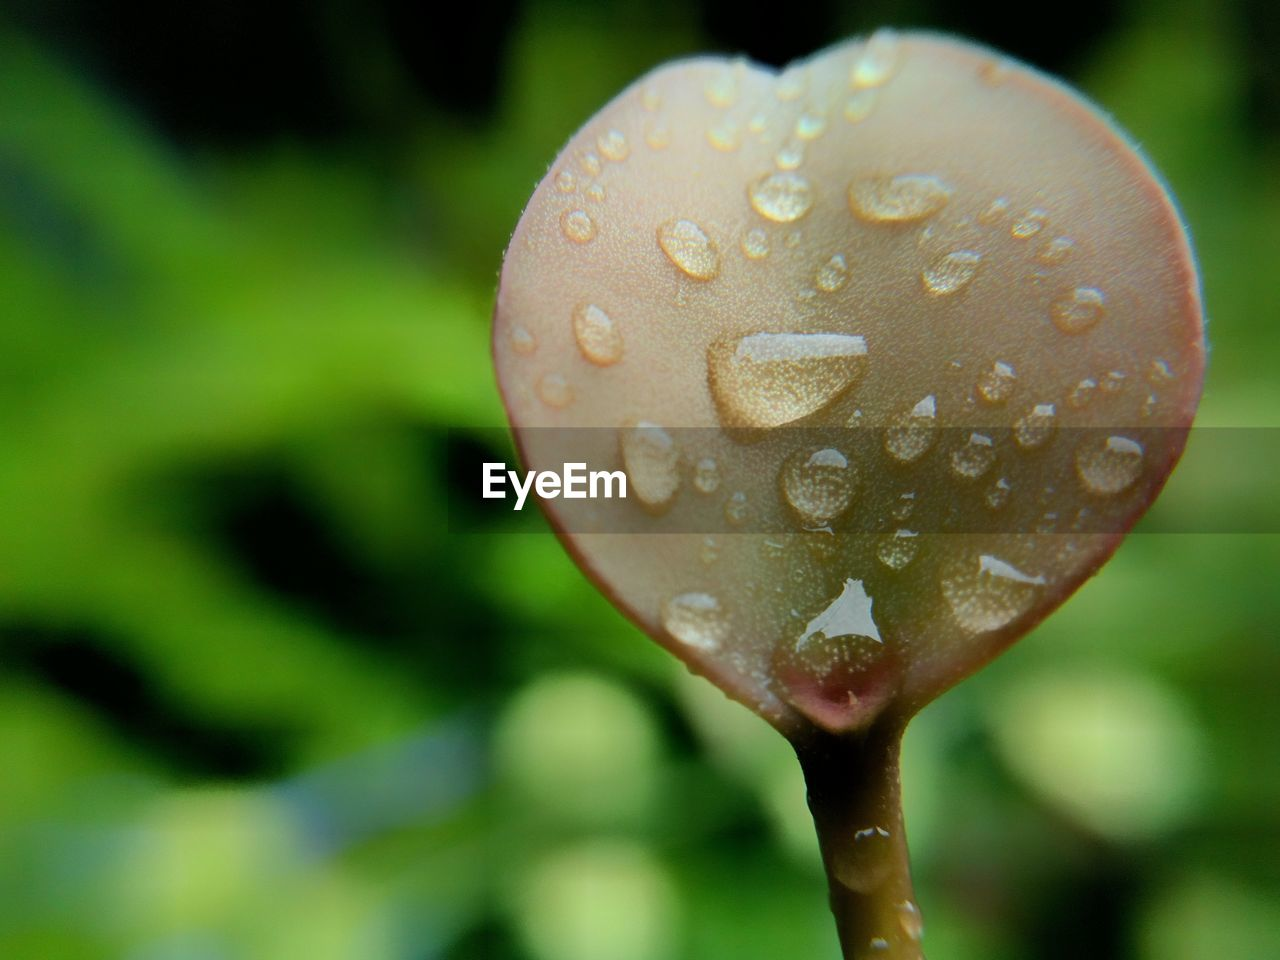 nature, drop, close-up, water, focus on foreground, beauty in nature, growth, wet, fragility, no people, freshness, outdoors, day, plant